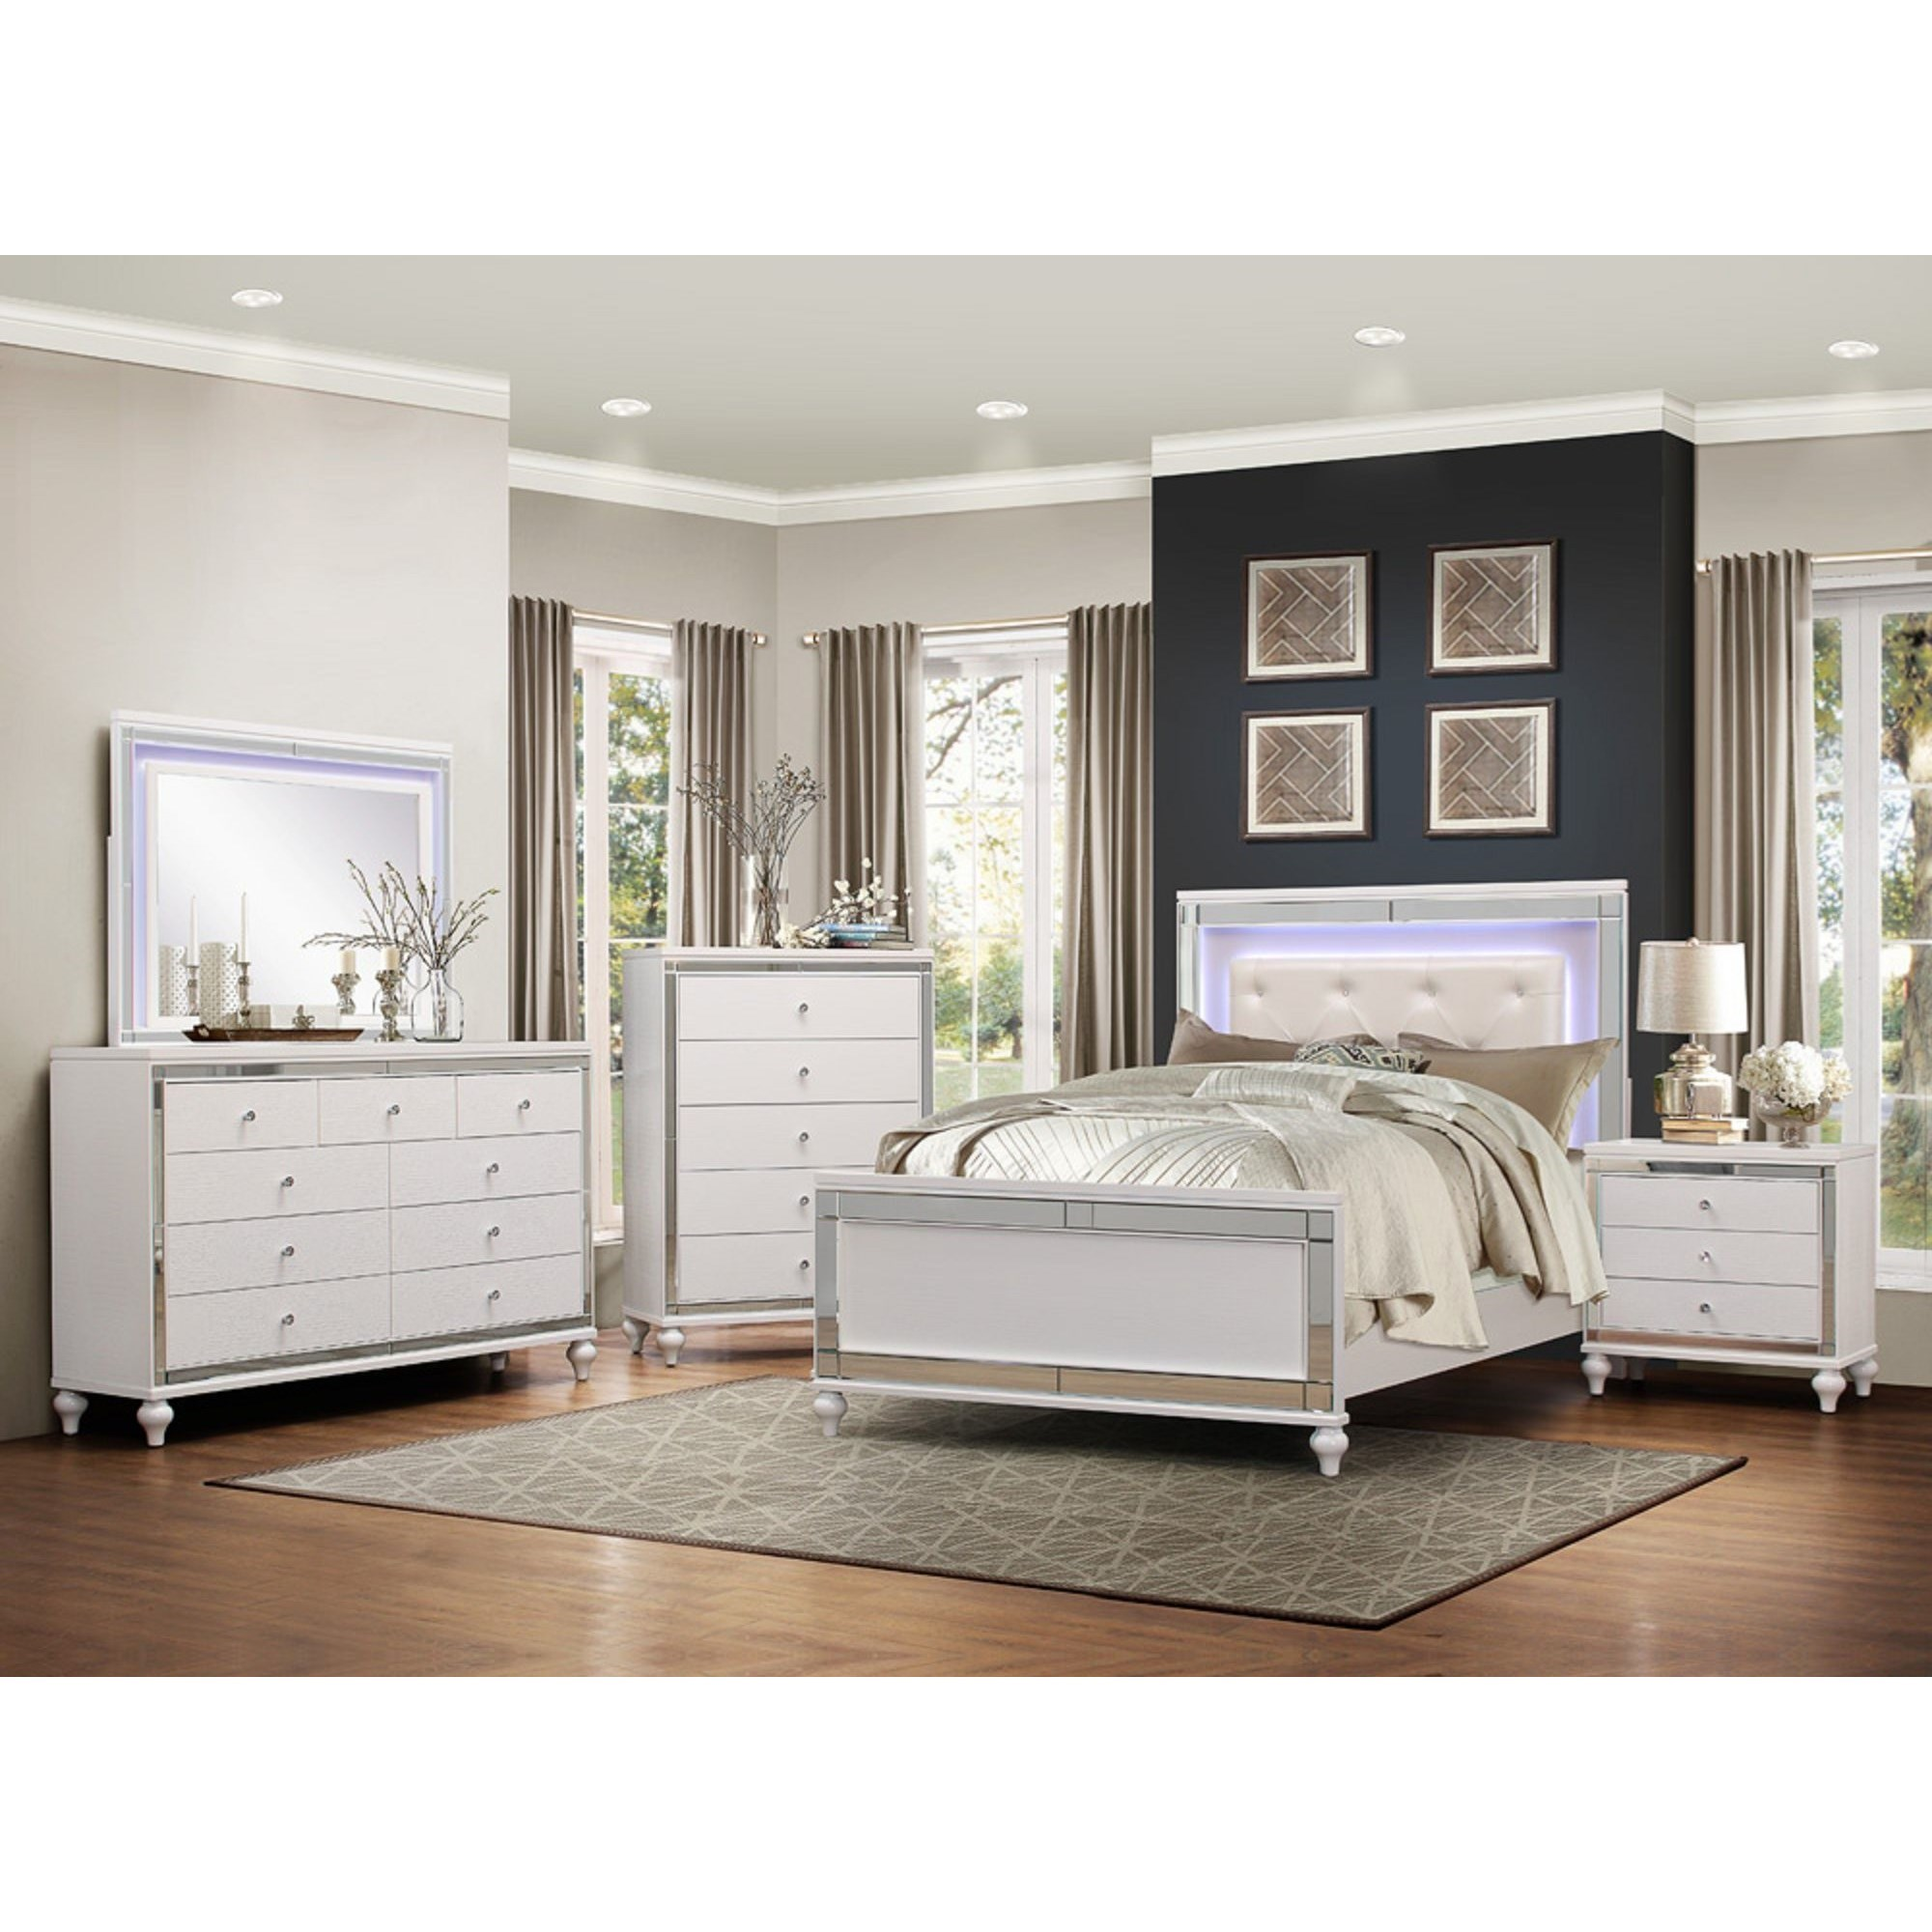 King Bedroom Group without Chest